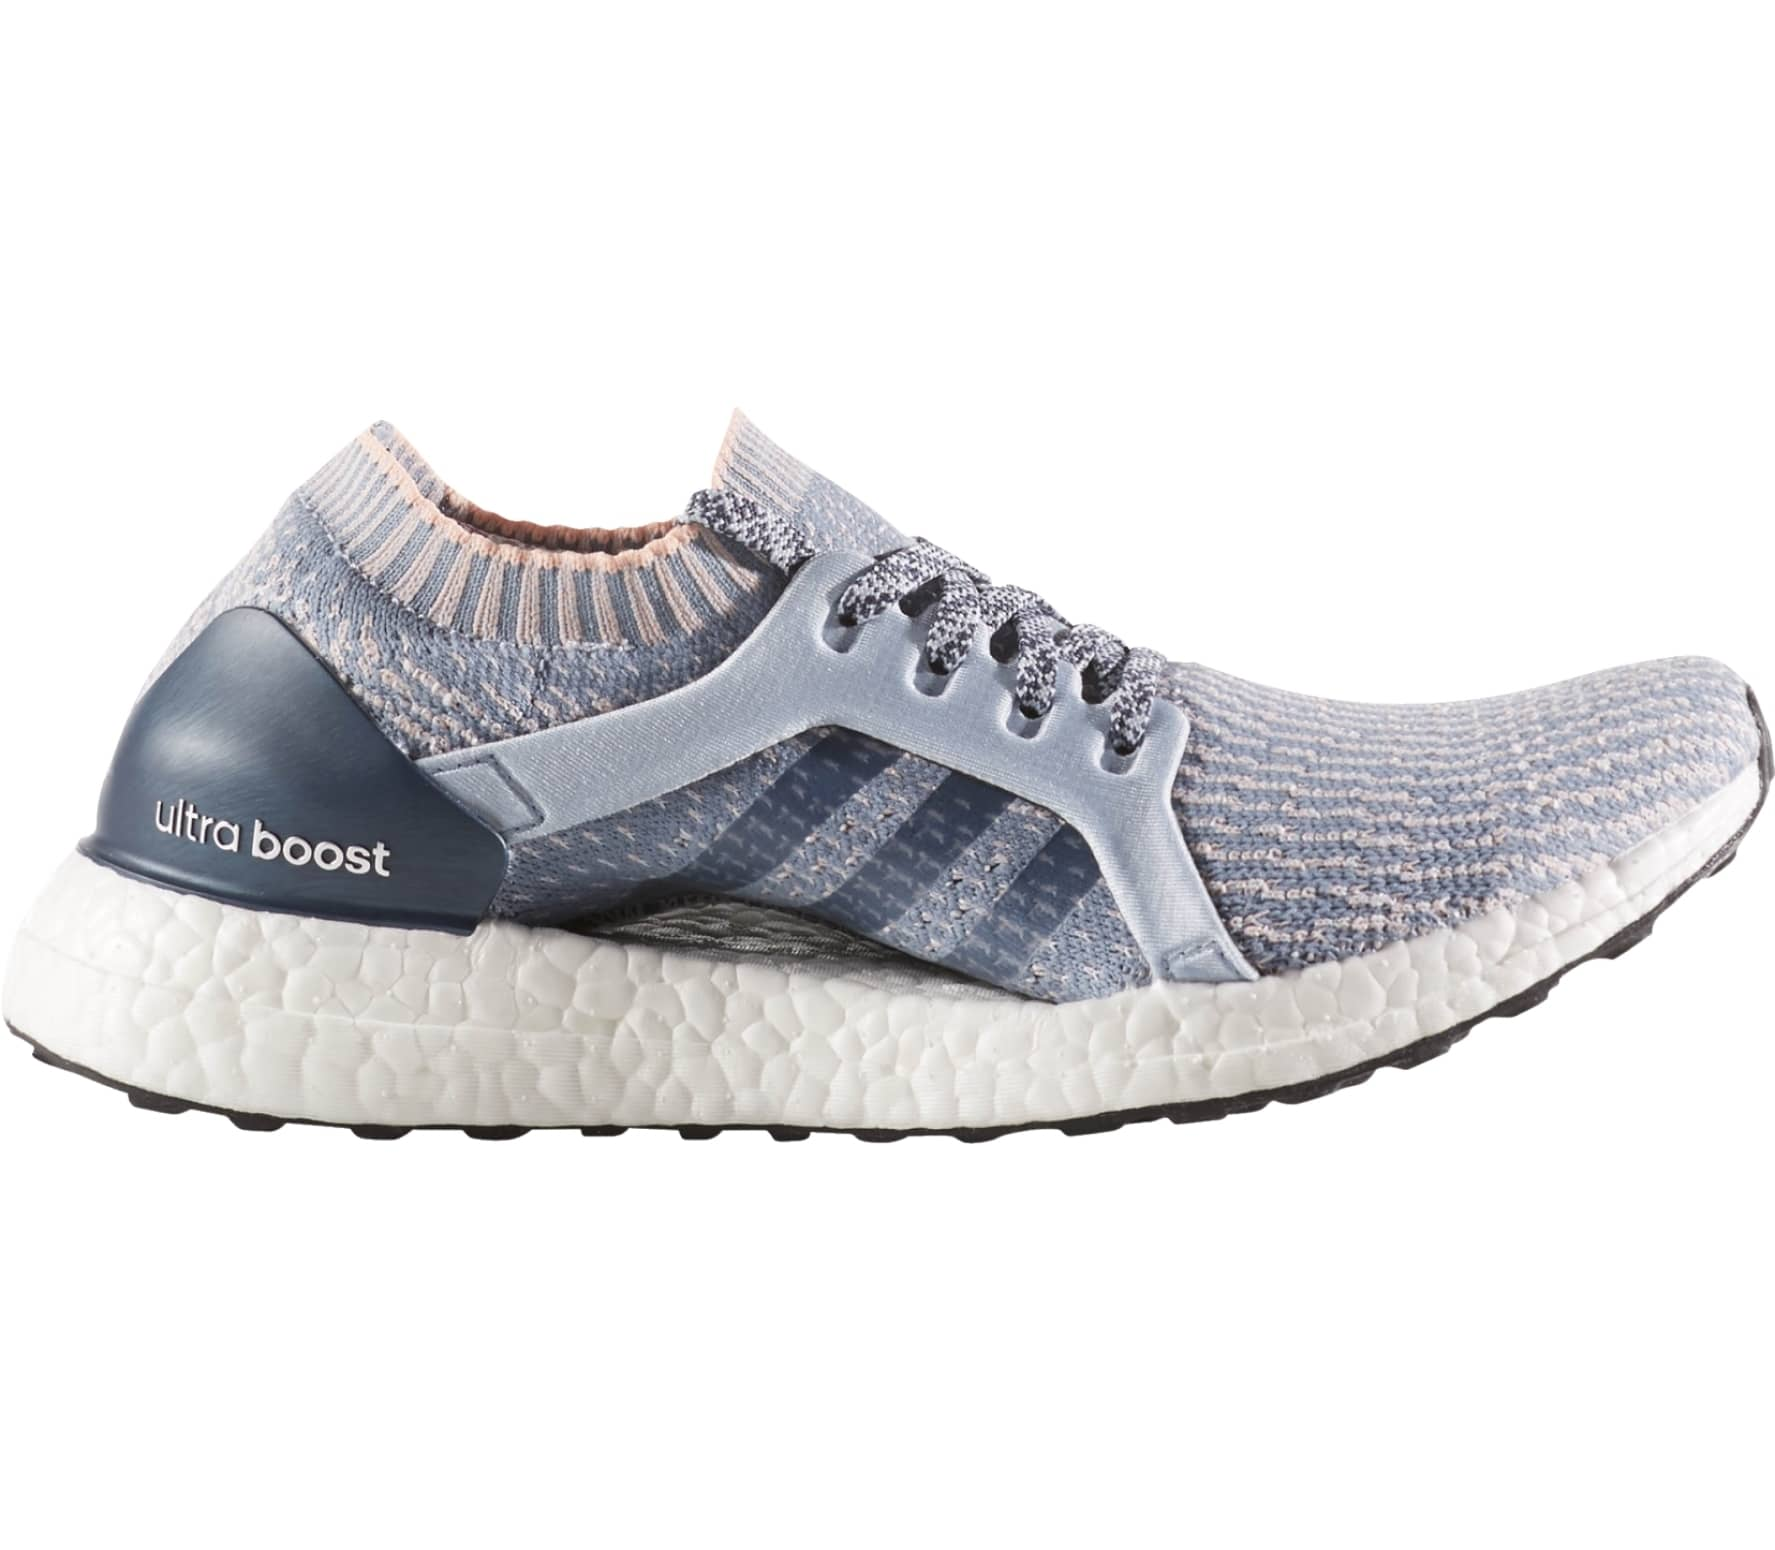 e0de6298e8a28 ... netherlands adidas ultra boost x womens running shoes light blue grey  ba1e2 ba8d2